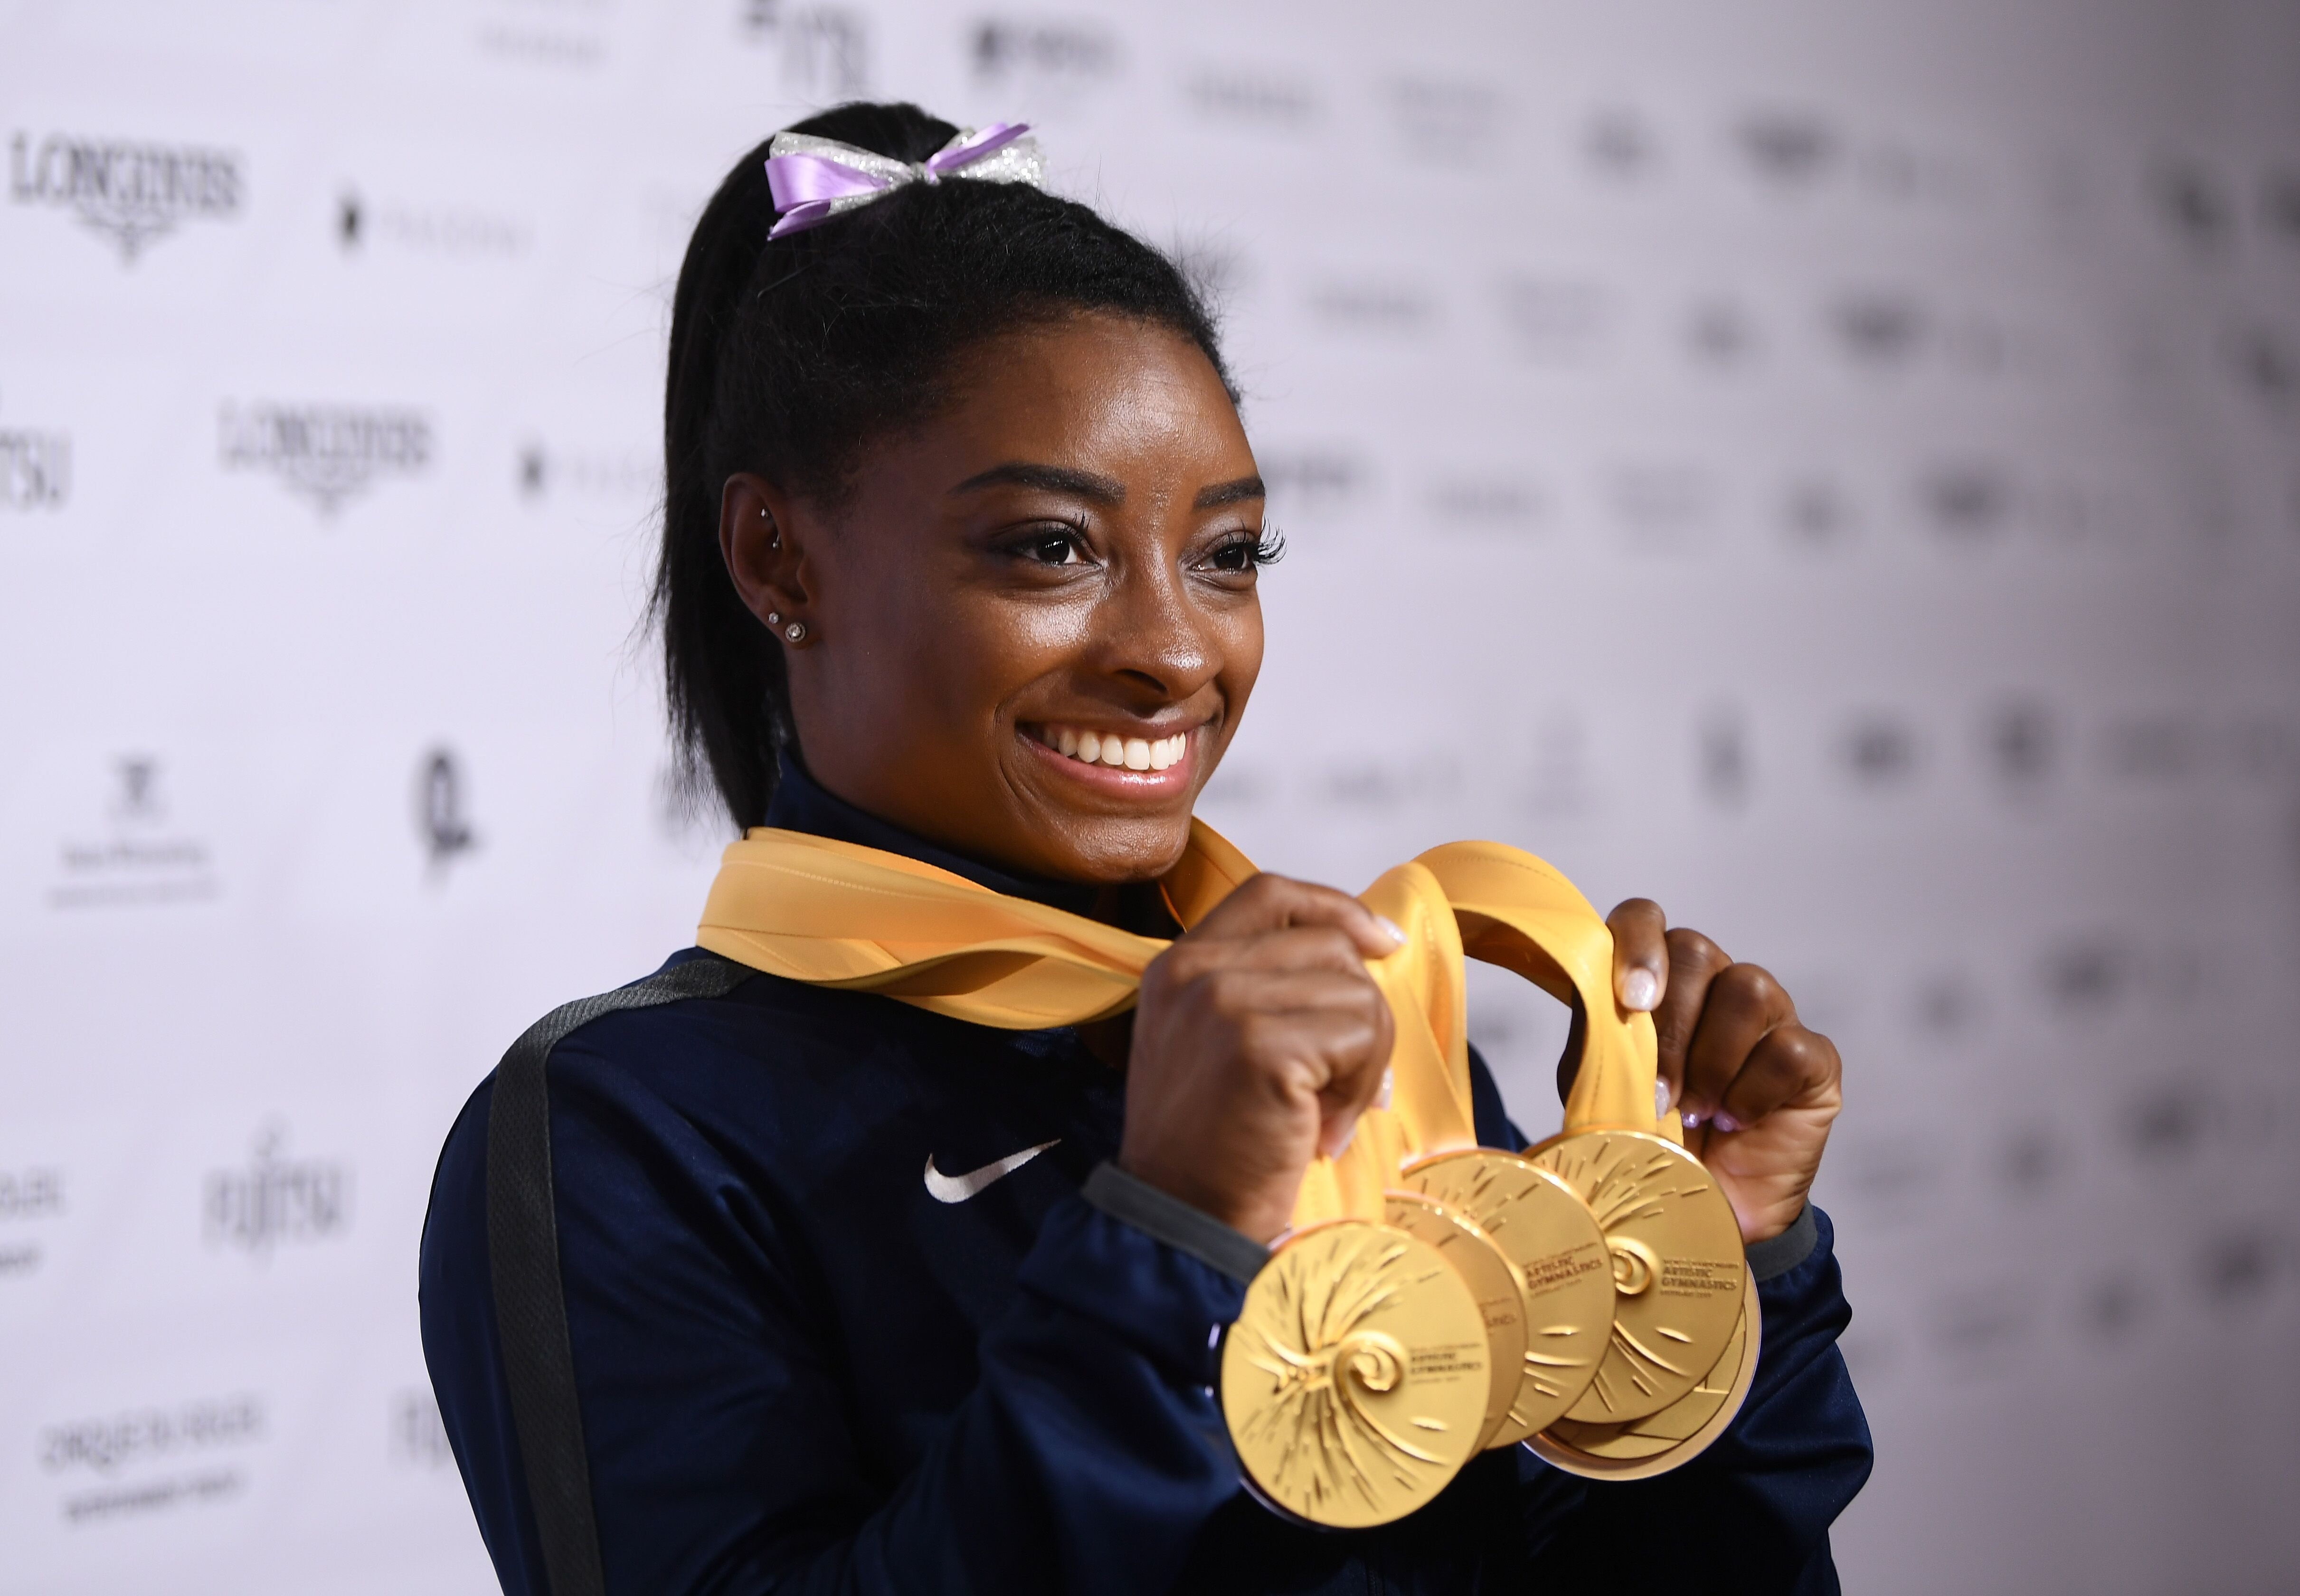 Simone Biles holding up her medals | Source: Getty Images/GlobalImagesUkraine